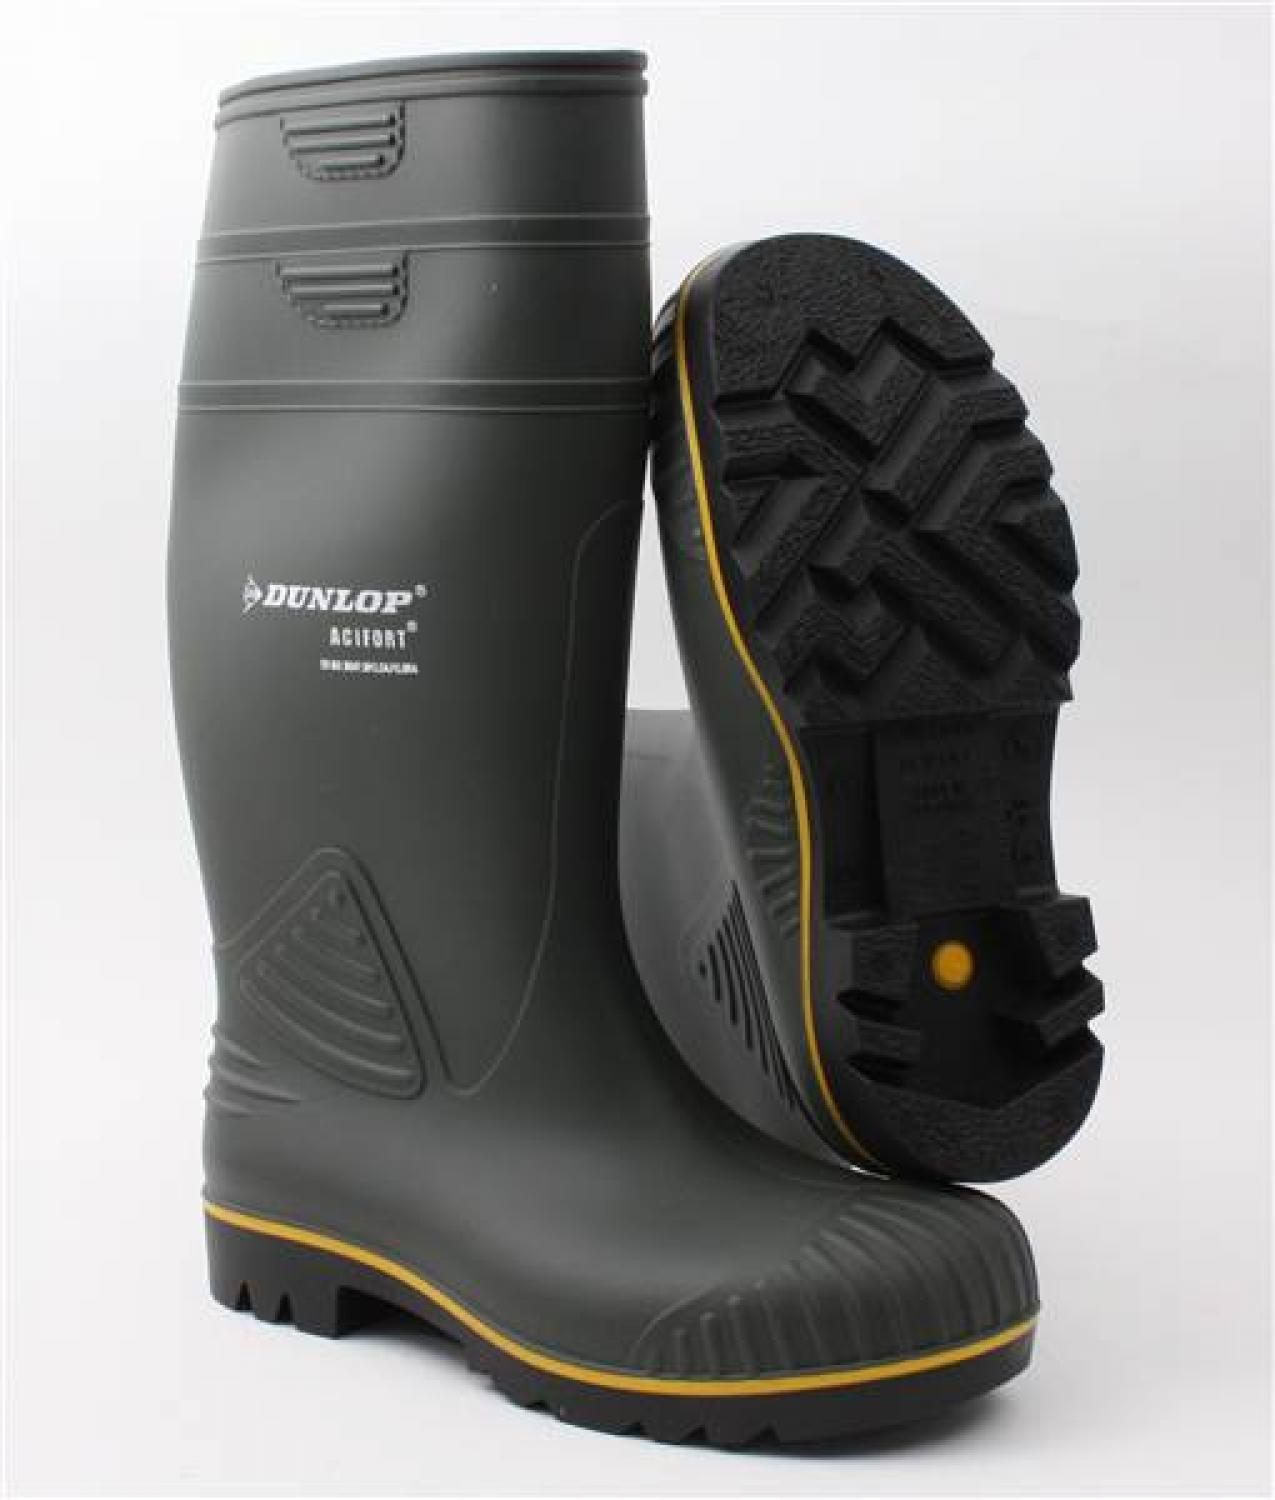 Agricultural Farming Welly Boots DUNLOP ACIFORT HEAVY DUTY FULL SAFETY Wellies